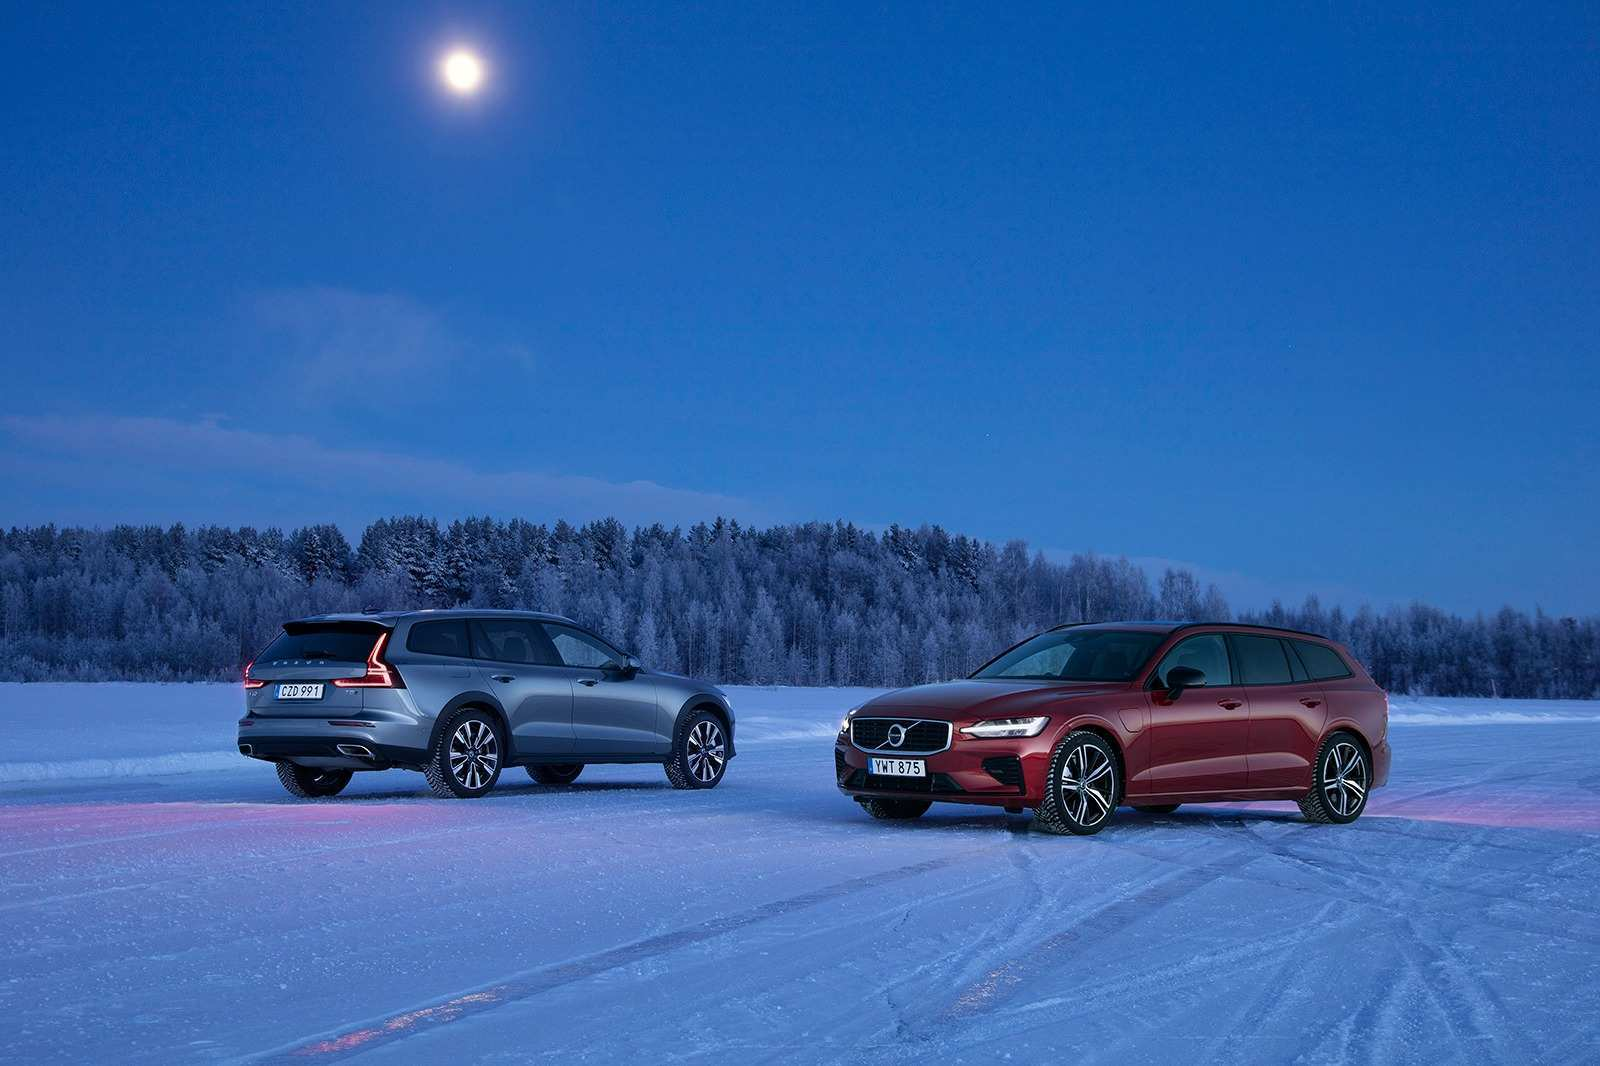 60 Concept of Volvo 2019 Station Wagon Release Date Spy Shoot with Volvo 2019 Station Wagon Release Date